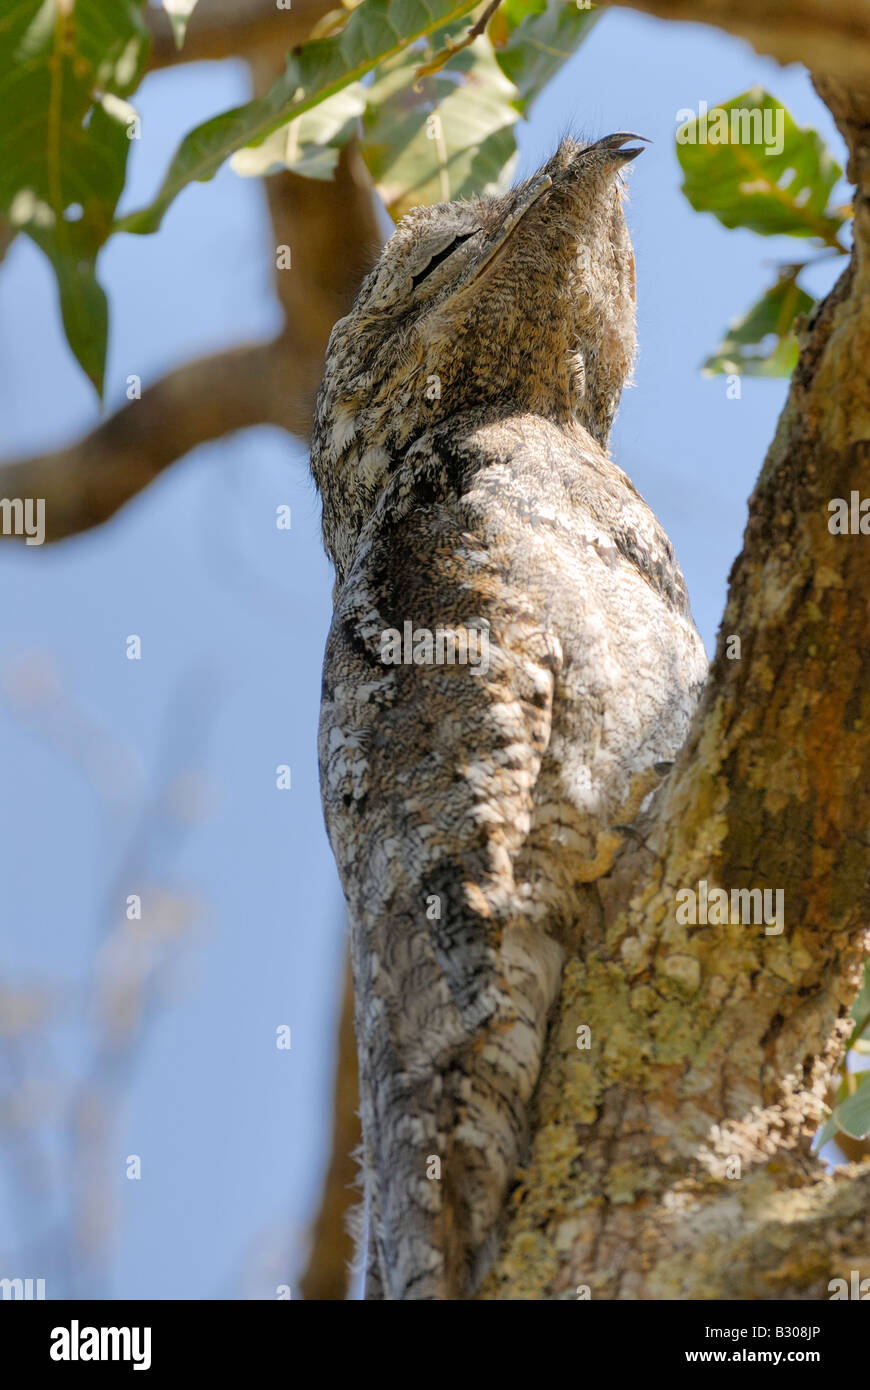 giant or great Potoo ,Nyctibius grandis, sitting in a tree, LLANOS, Venezuela, South America - Stock Image